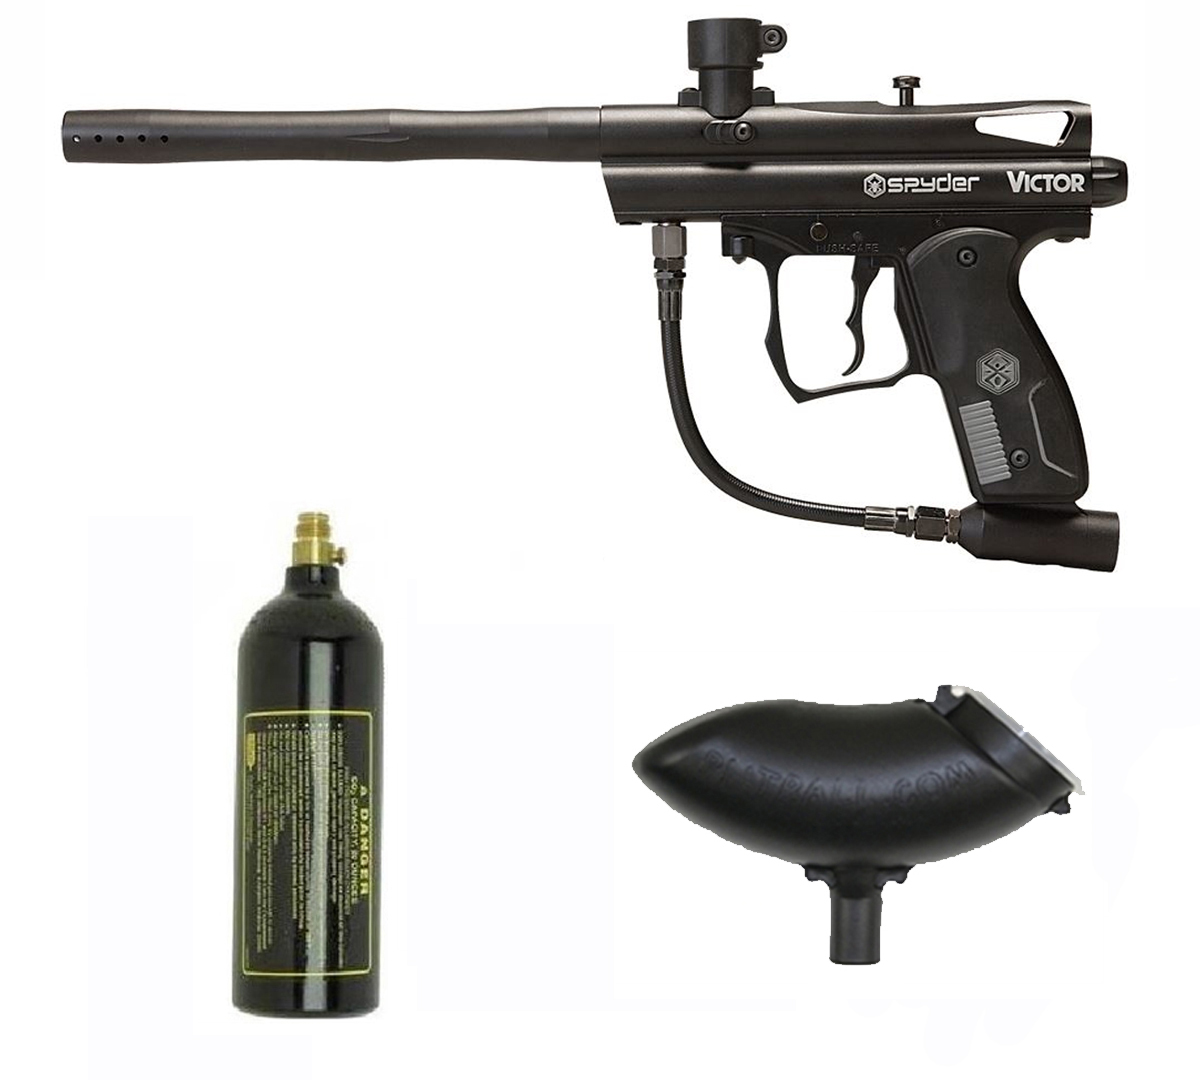 Spyder Victor Paintball Gun 3Skull Marker Package Black by